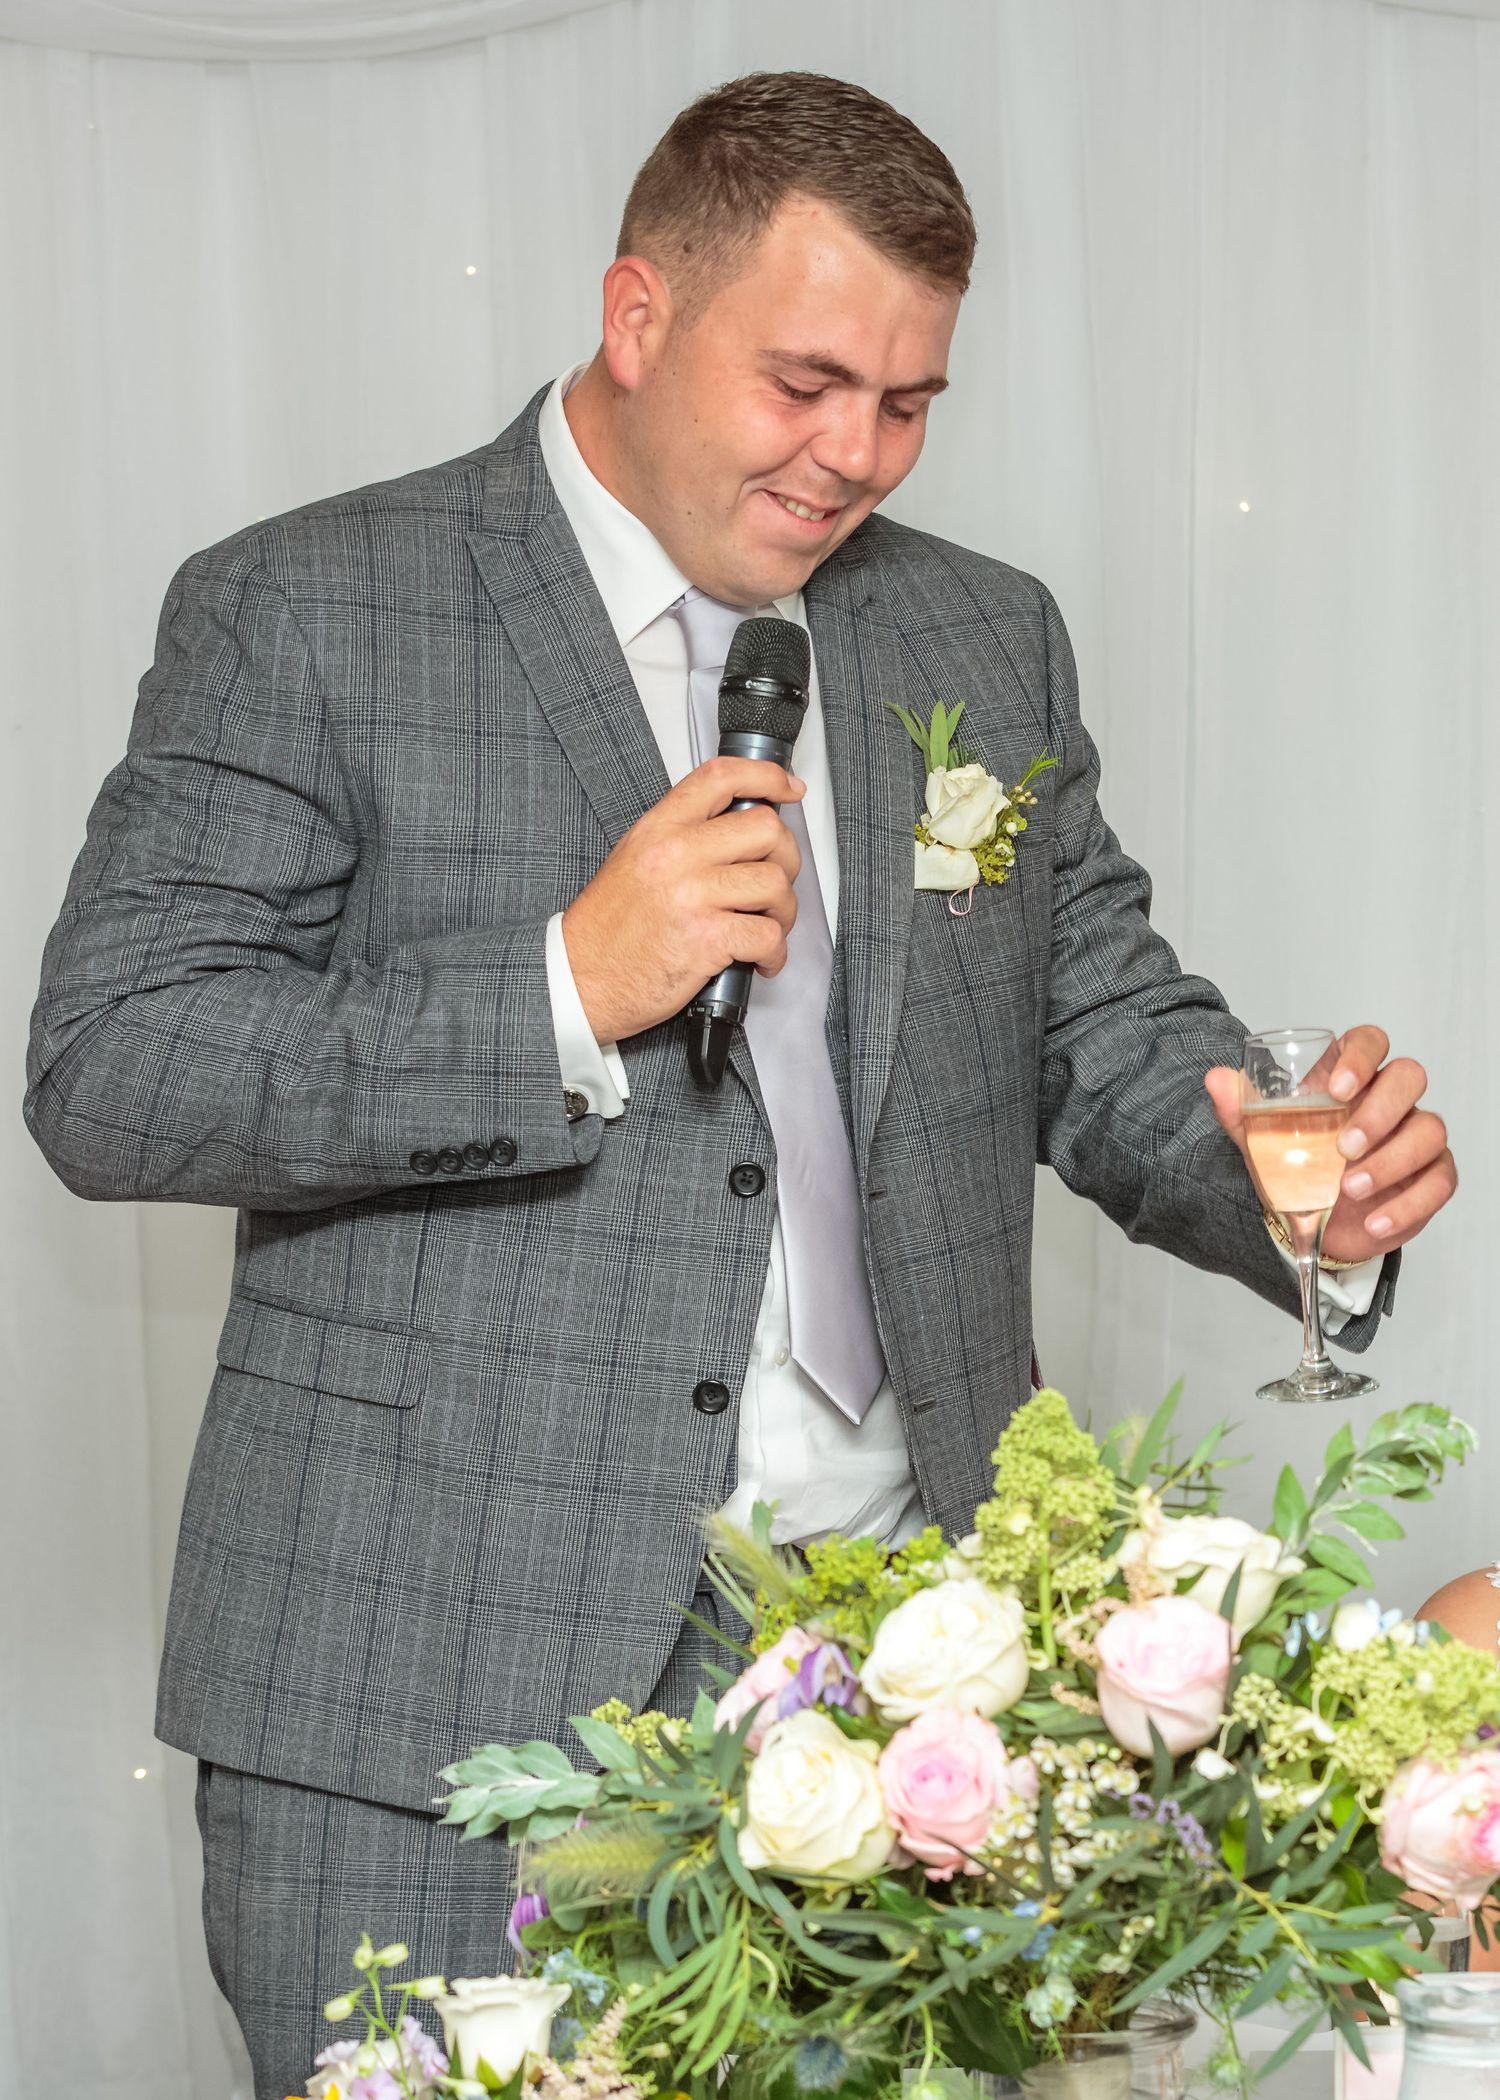 groom wearing a grey suit gives his speech mic in one hand glass of champagne in the other